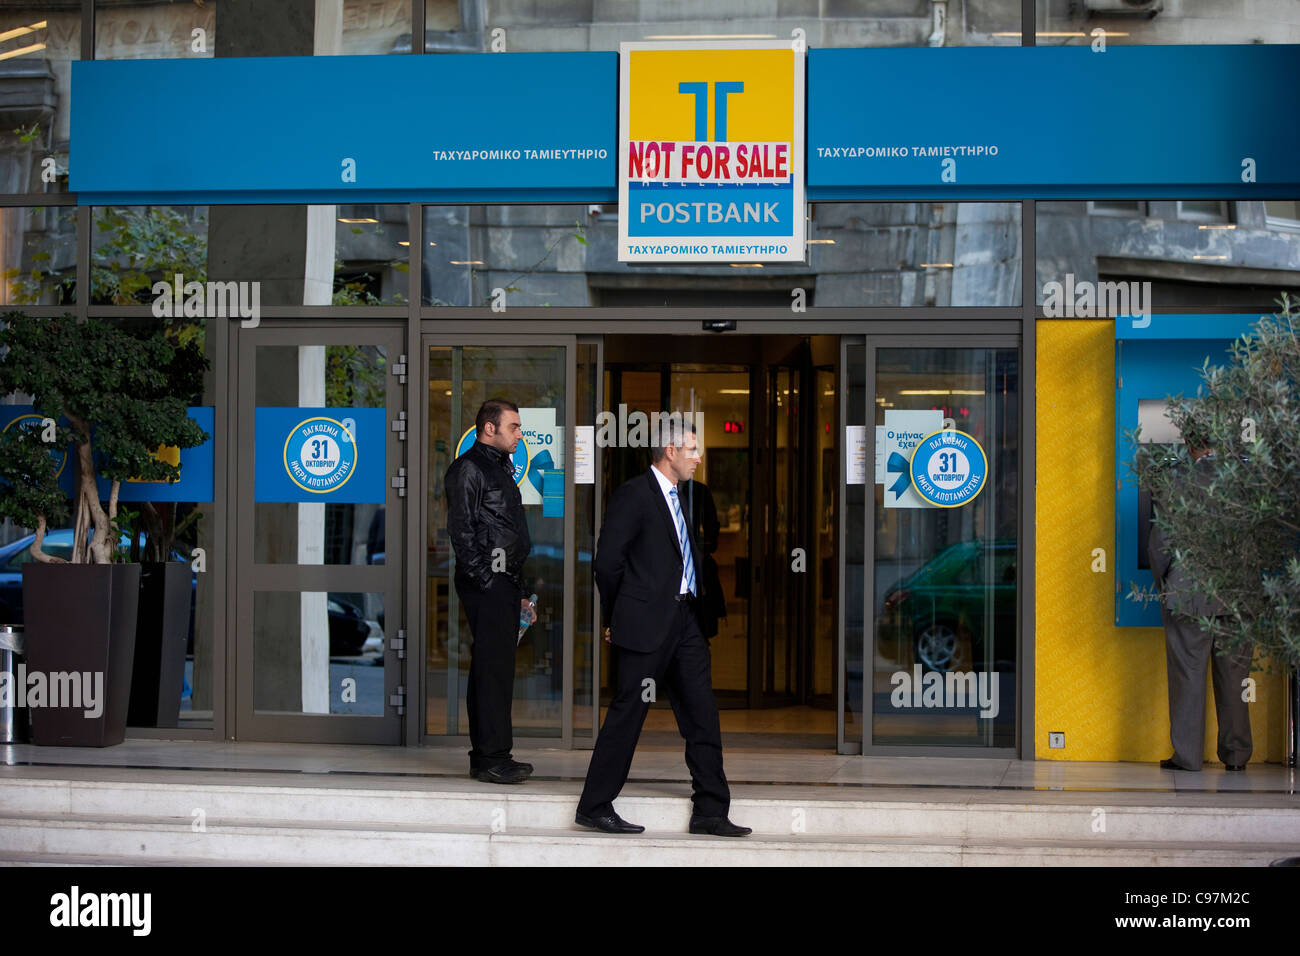 TT Hellenic Postbank with sign Not For Sale during economic downturn in Athens, Greece. - Stock Image